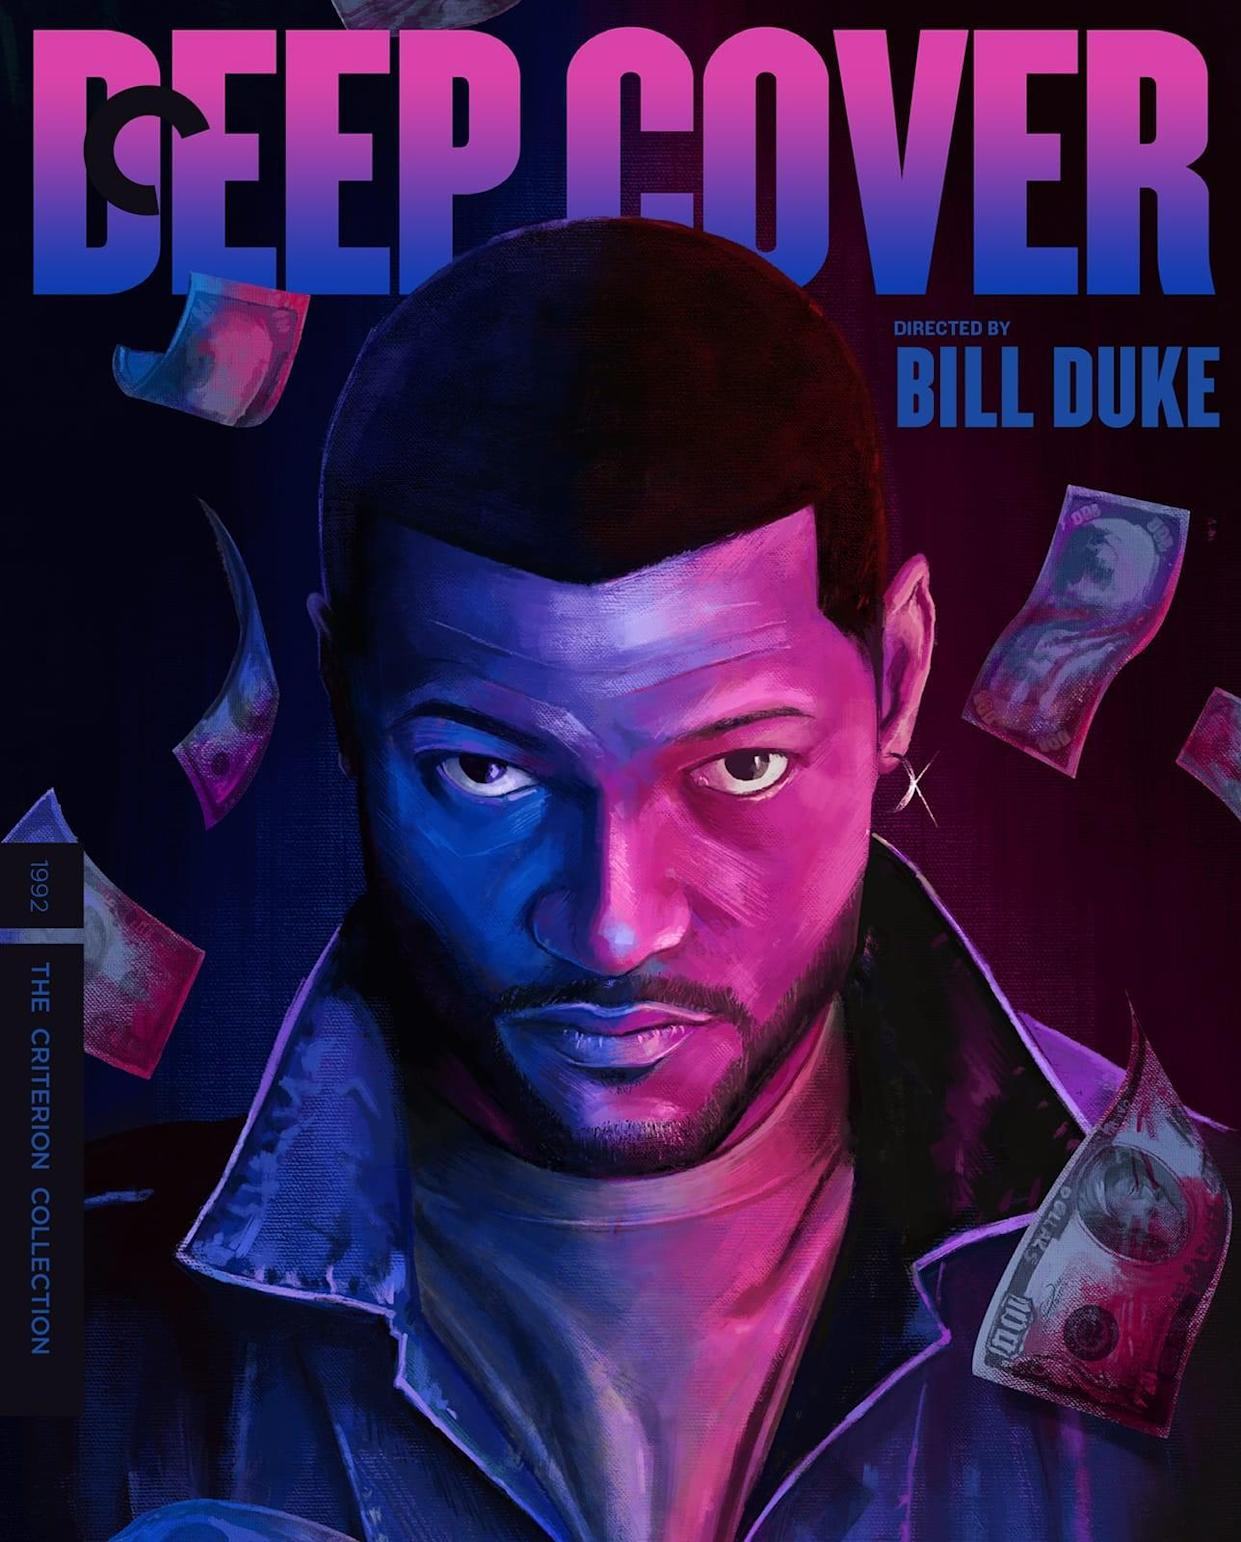 """""""Deep Cover"""" (Photo: The Criterion Collection)"""